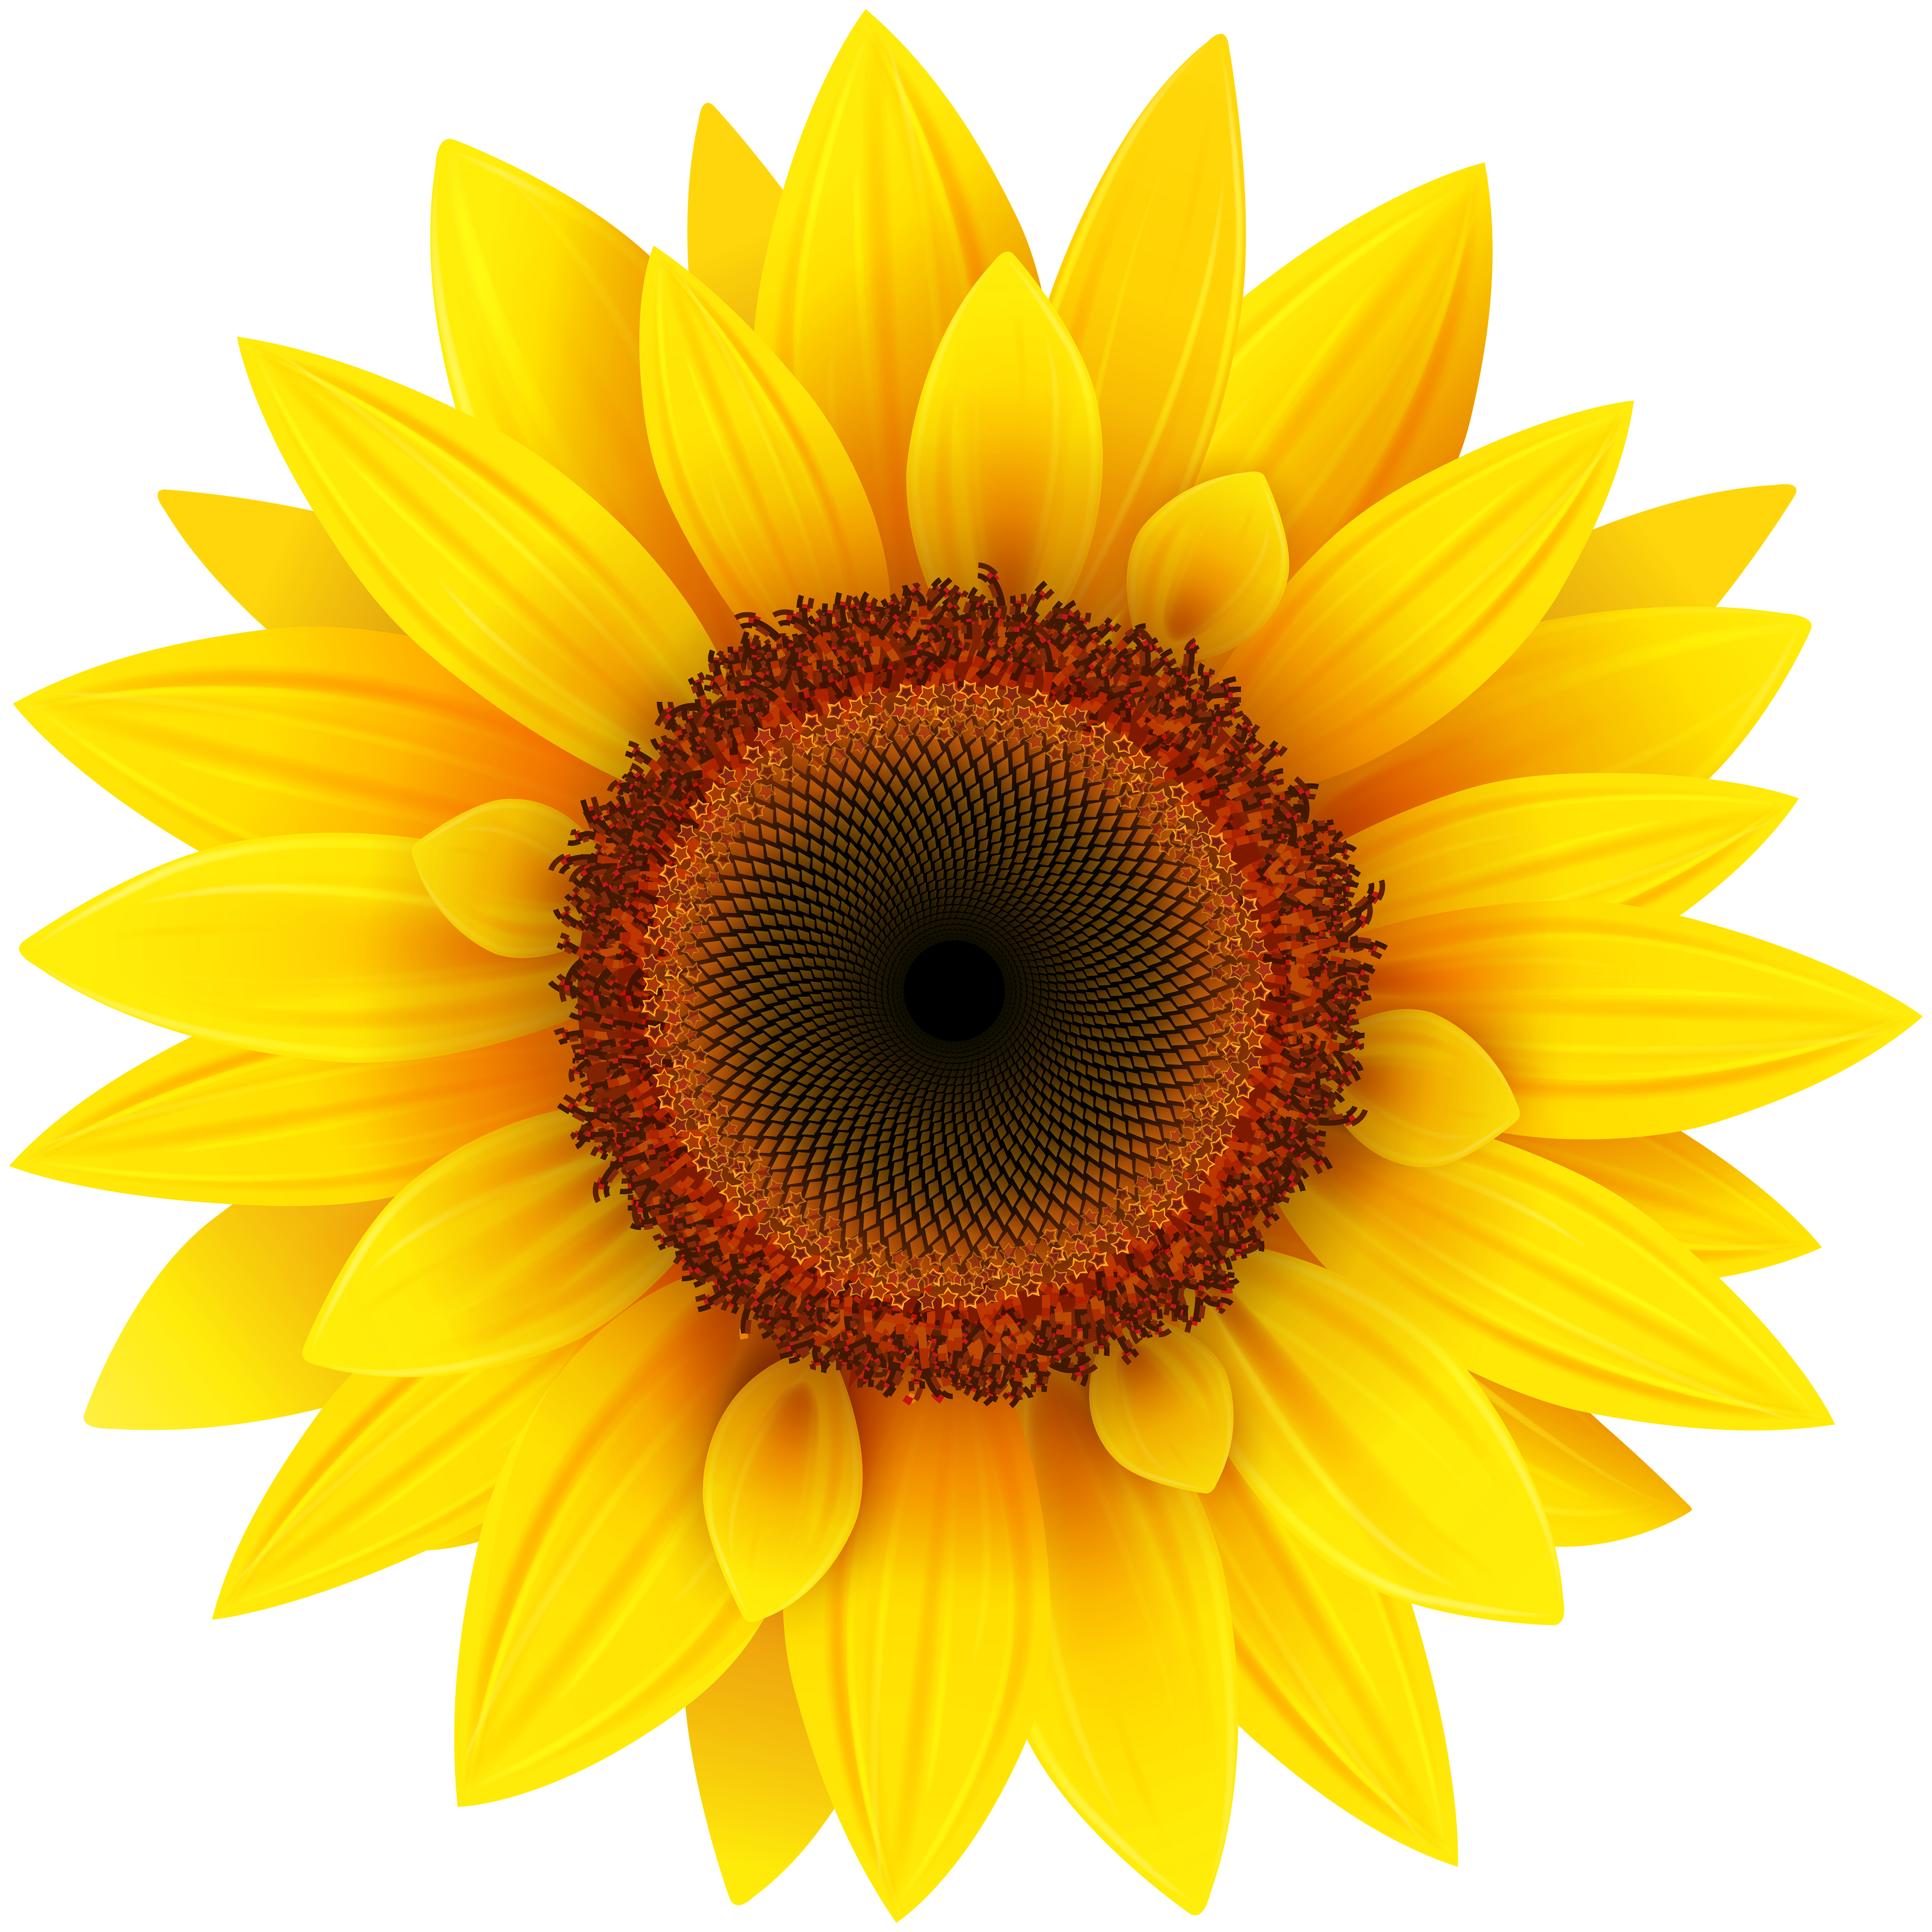 svg library library Sunflower png picture gallery. Sunflowers clipart transparent background